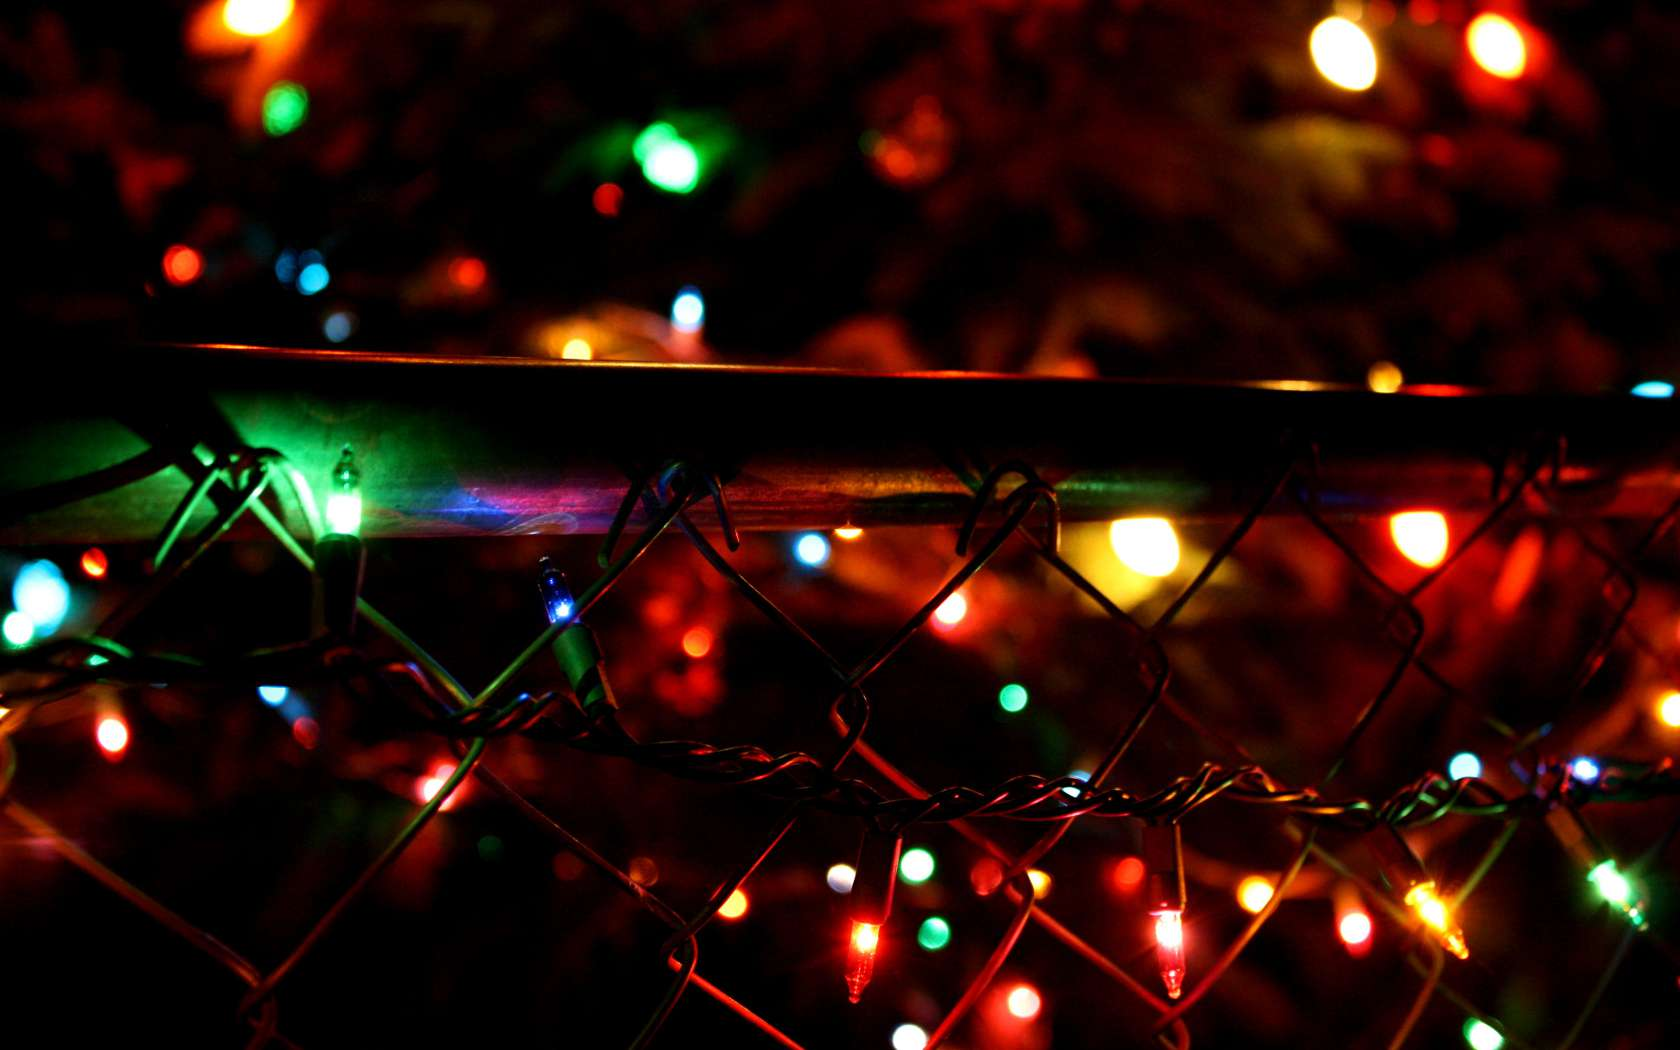 Christmas Lights Wallpaper : Christmas Lights Backgrounds - Wallpaper Cave